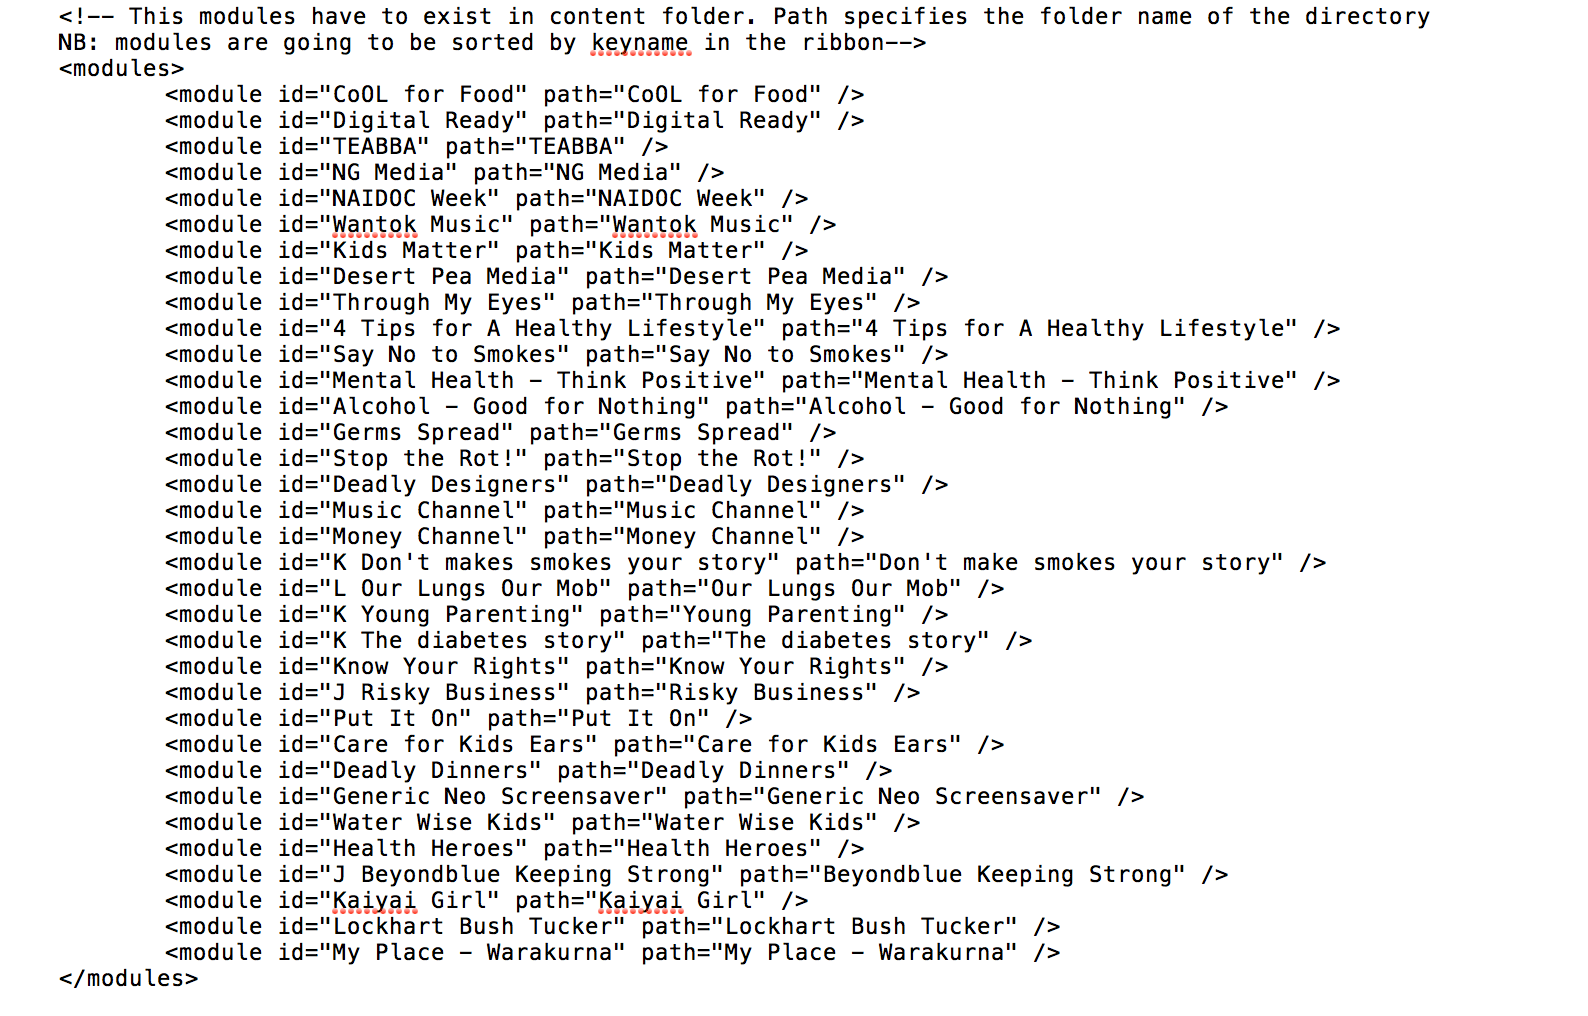 A sample XML hub file - well the part we need to manipulate